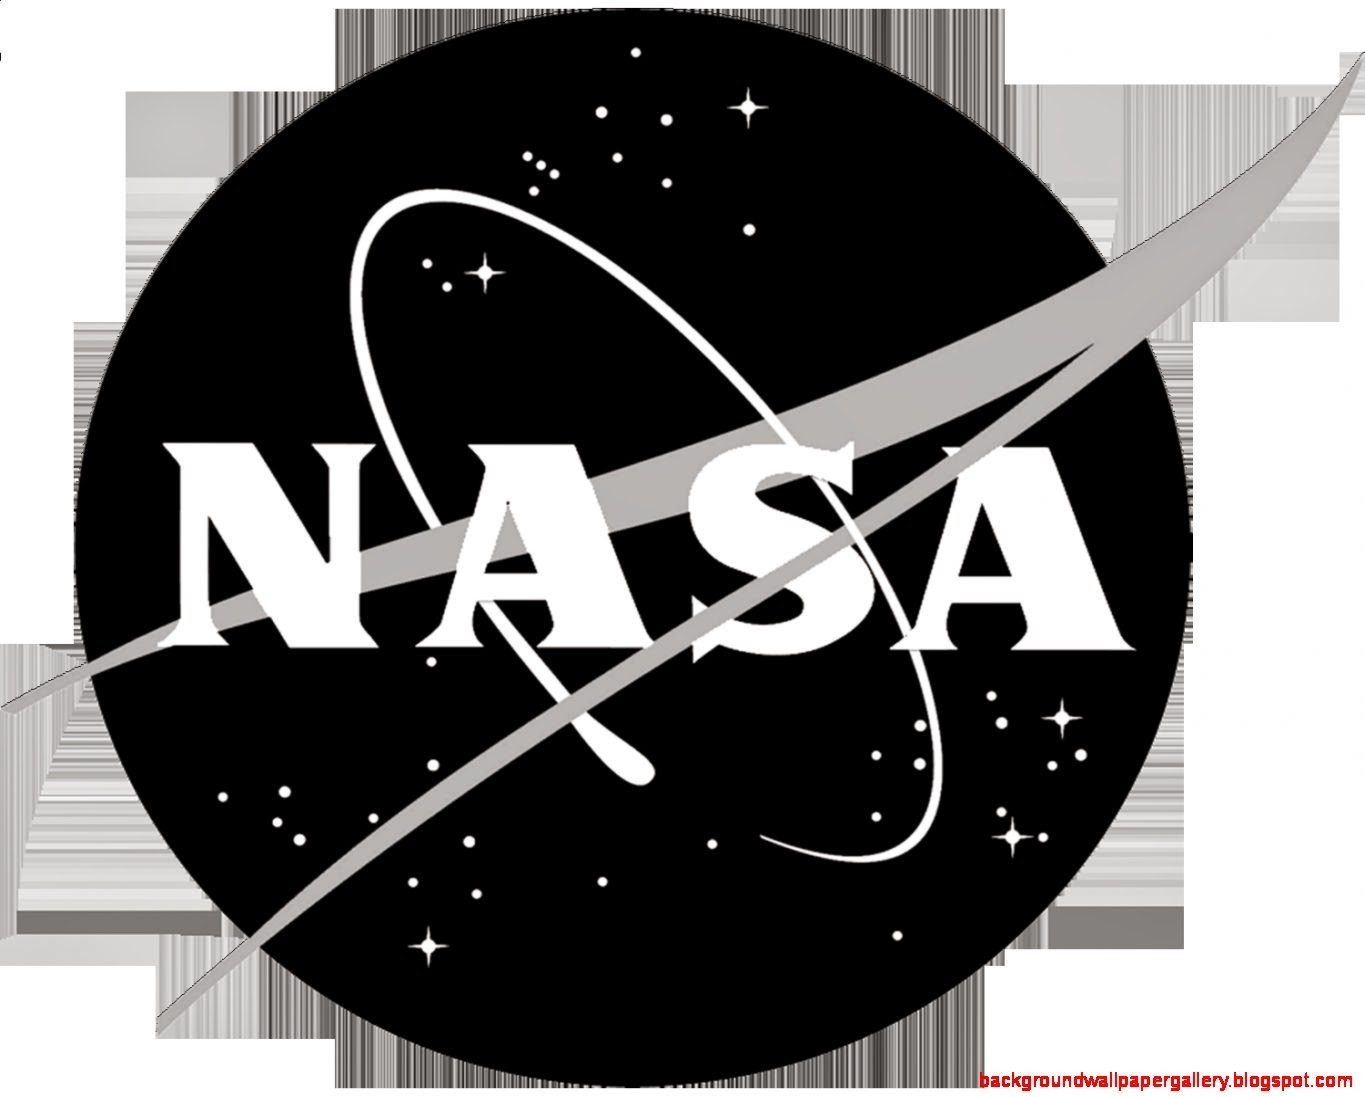 Nasa Logos Brand Hd Wallpaper Desktop Background 1365x1097